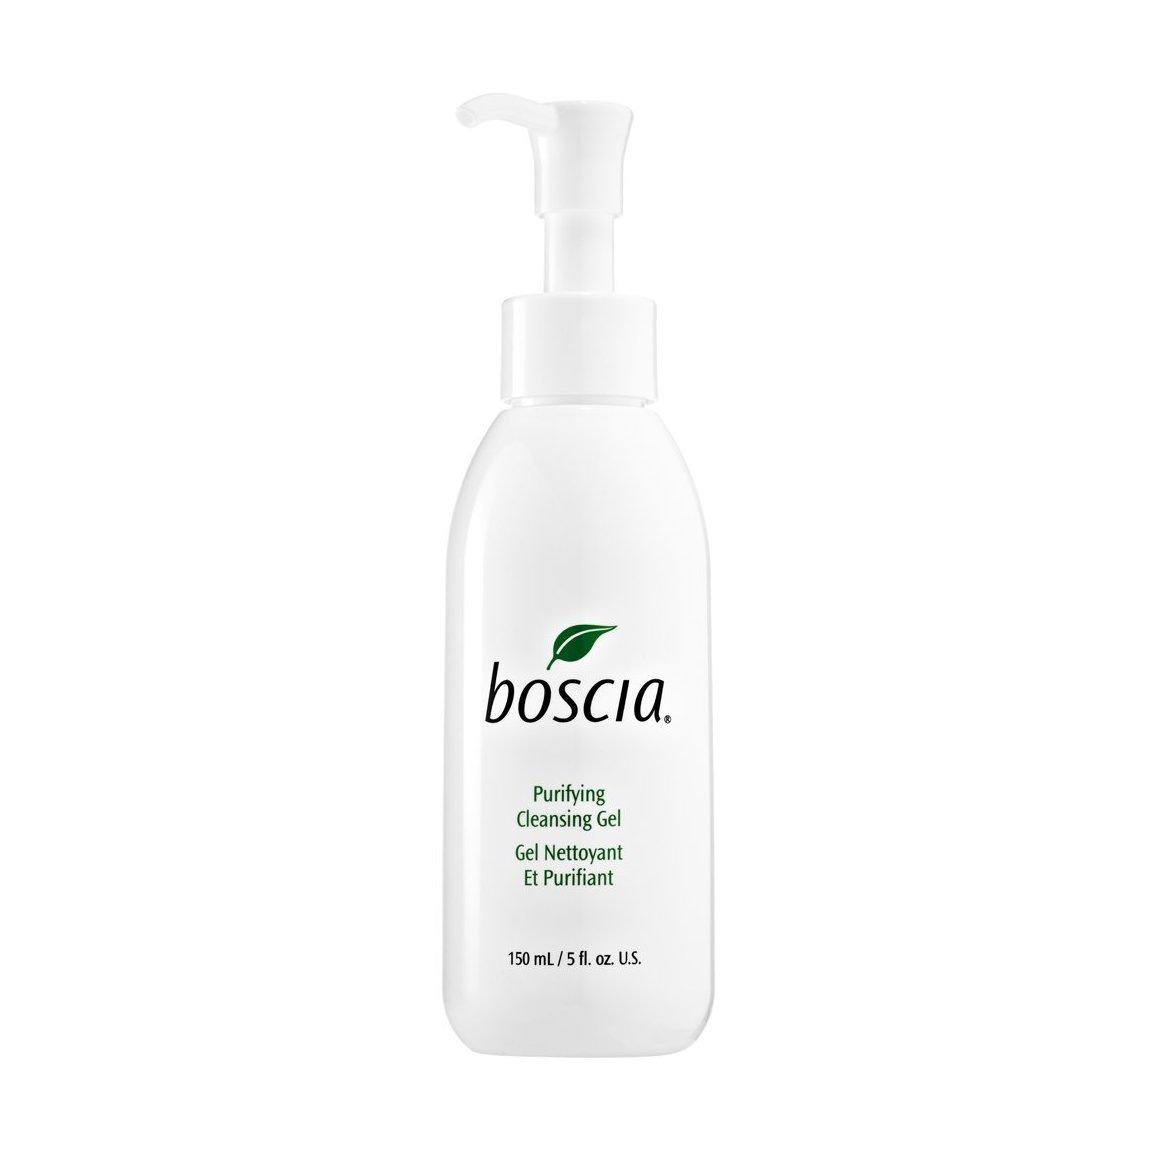 Purifying Cleansing Gel by boscia #11